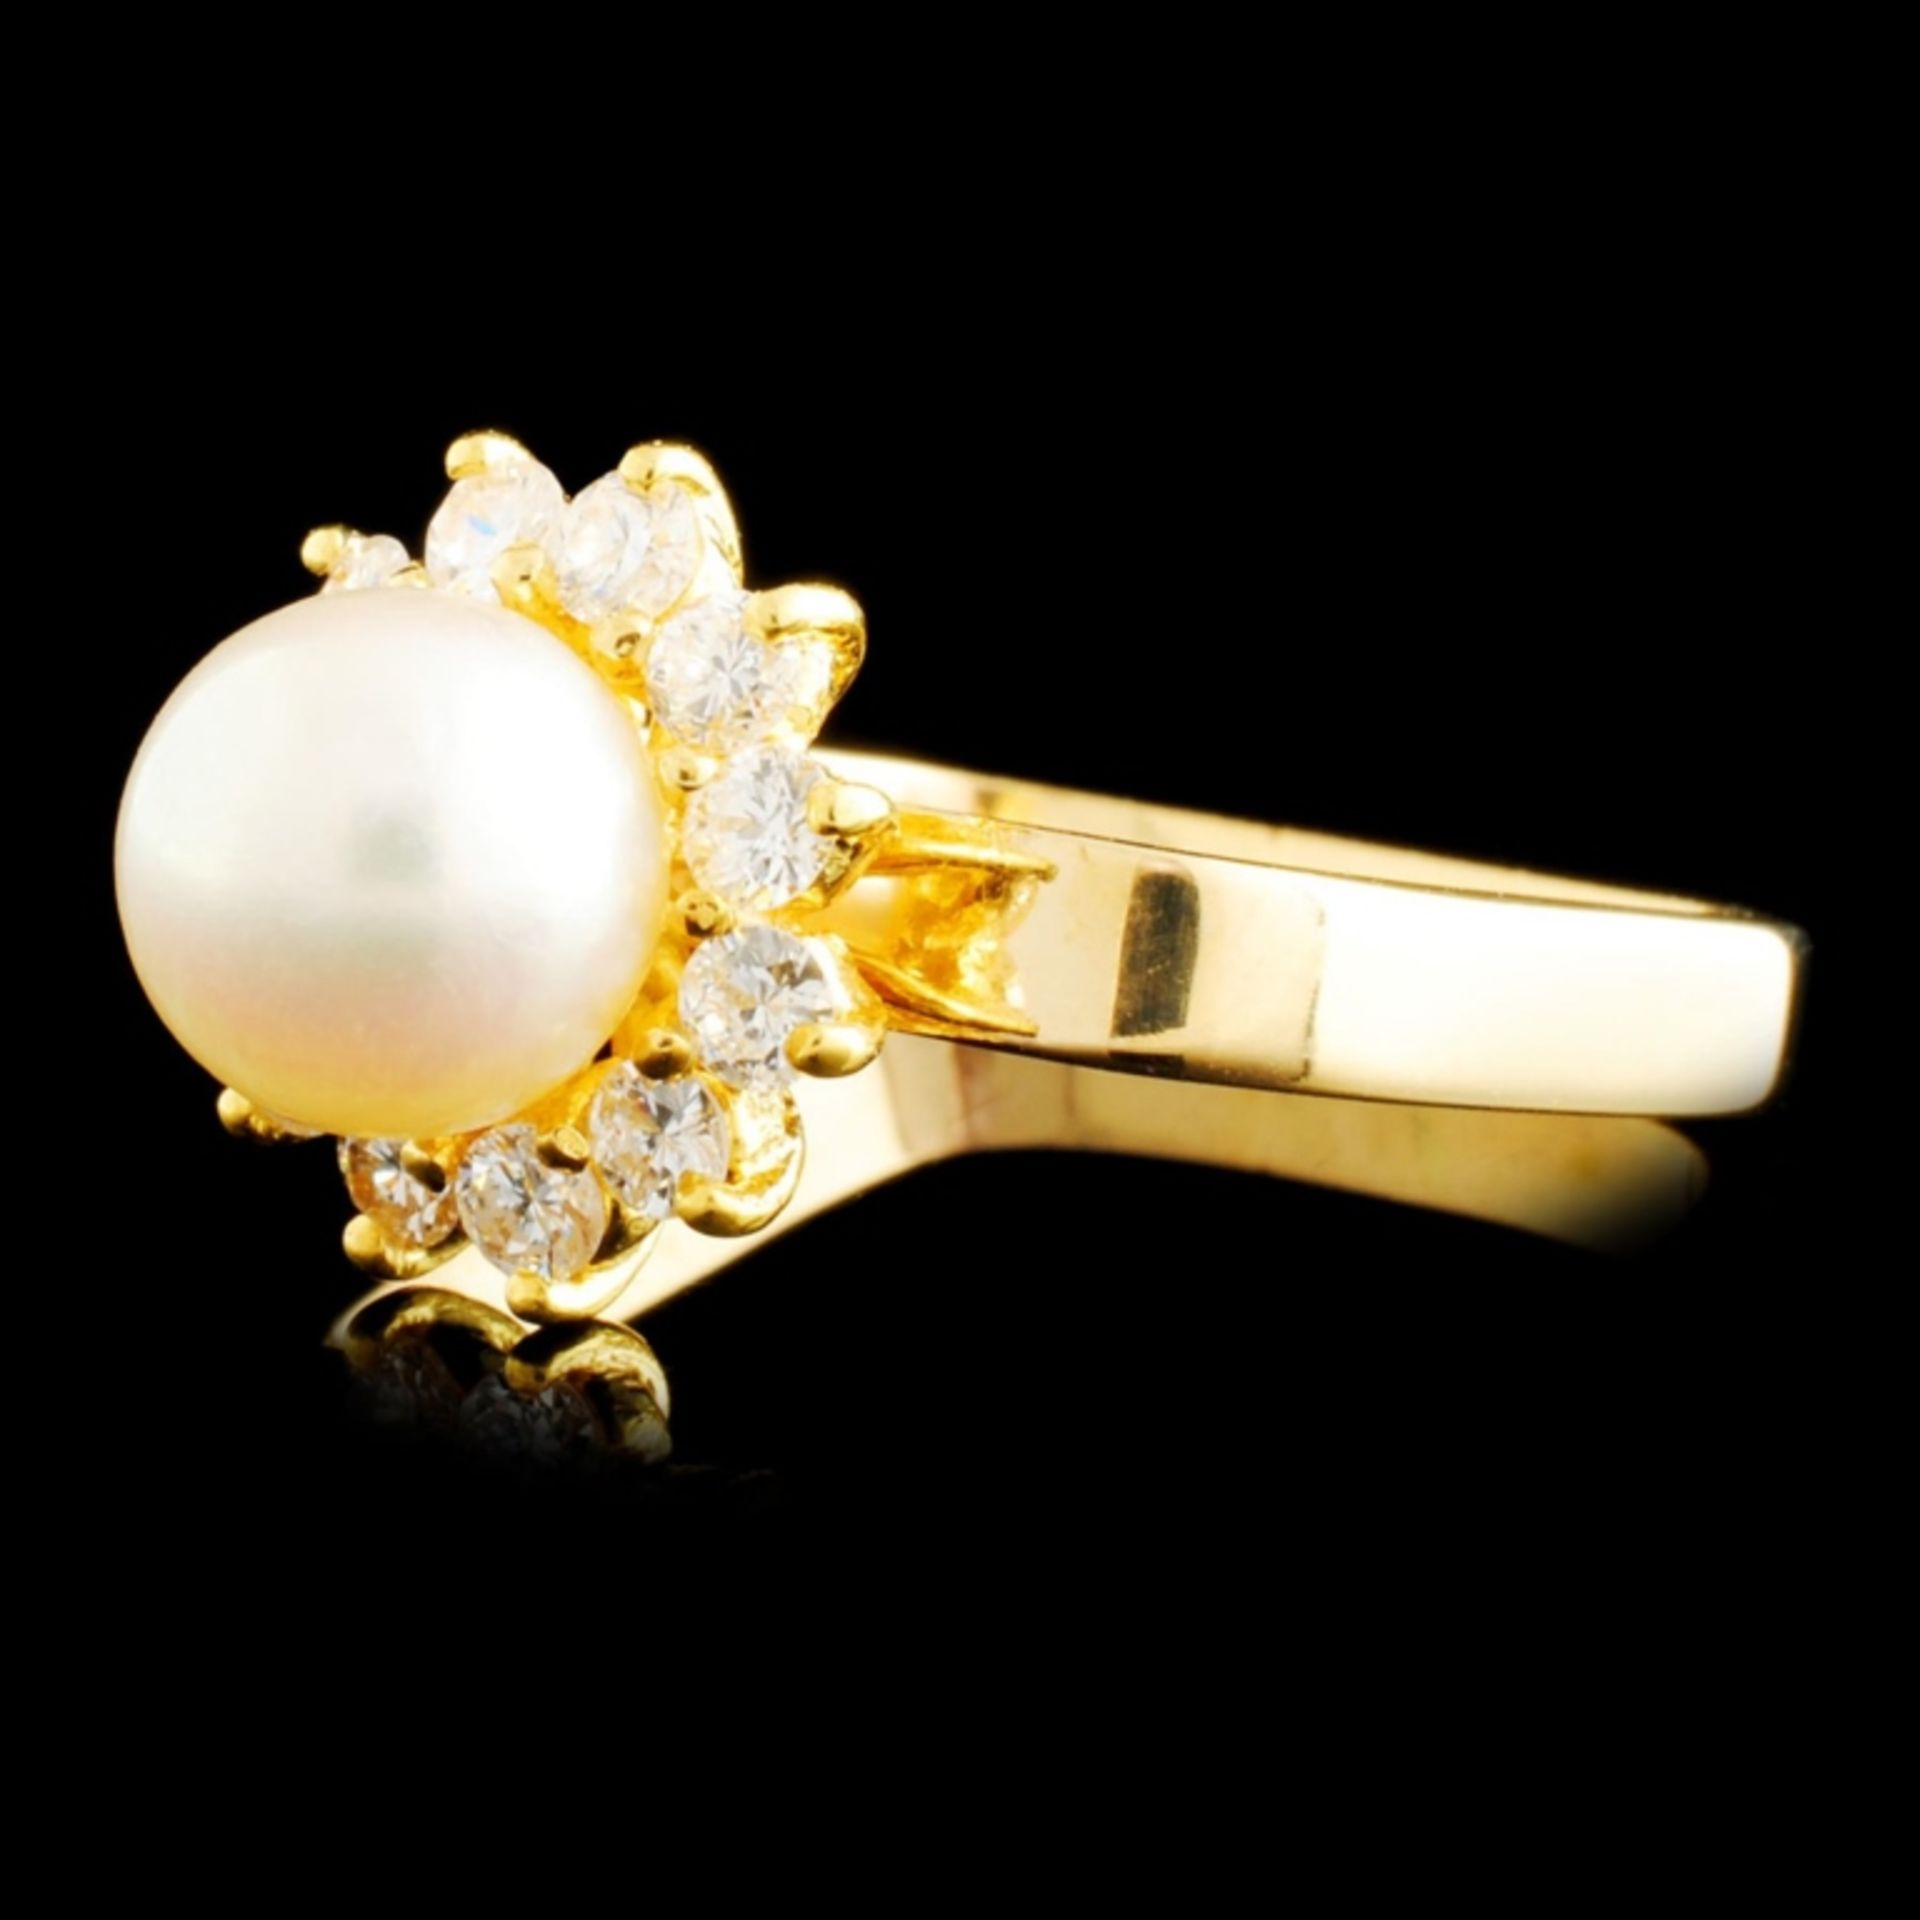 14K Gold 7.00MM Pearl & 0.42ctw Diamond Ring - Image 2 of 4